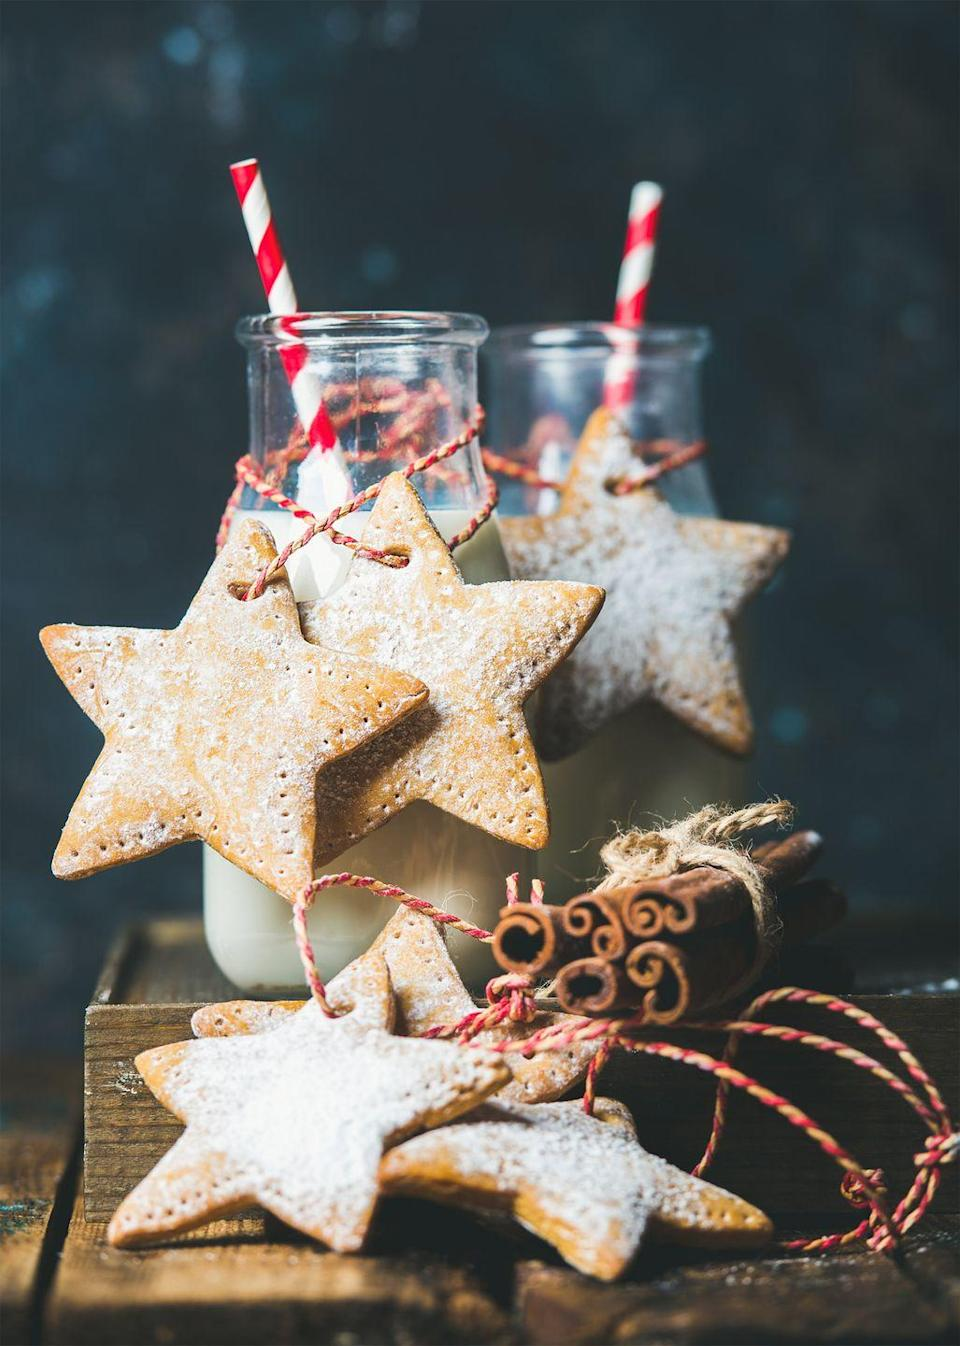 """<p>Grab your cookie sheets and whip up some special treats to set out for Santa. You can't go wrong with classic <a href=""""https://www.countryliving.com/food-drinks/recipes/a40523/christmas-light-sugar-cookies-recipe/"""" rel=""""nofollow noopener"""" target=""""_blank"""" data-ylk=""""slk:sugar cookies"""" class=""""link rapid-noclick-resp"""">sugar cookies</a>, <a href=""""https://www.countryliving.com/food-drinks/g3604/gingerbread-cookie-recipes/"""" rel=""""nofollow noopener"""" target=""""_blank"""" data-ylk=""""slk:gingerbread cookies"""" class=""""link rapid-noclick-resp"""">gingerbread cookies</a>, or peppermint-topped treats. </p><p><a class=""""link rapid-noclick-resp"""" href=""""https://www.amazon.com/StarPack-Christmas-Cookie-Cutters-Piece/dp/B0162AHDMY/?tag=syn-yahoo-20&ascsubtag=%5Bartid%7C10050.g.25411840%5Bsrc%7Cyahoo-us"""" rel=""""nofollow noopener"""" target=""""_blank"""" data-ylk=""""slk:SHOP COOKIE CUTTERS"""">SHOP COOKIE CUTTERS</a></p>"""